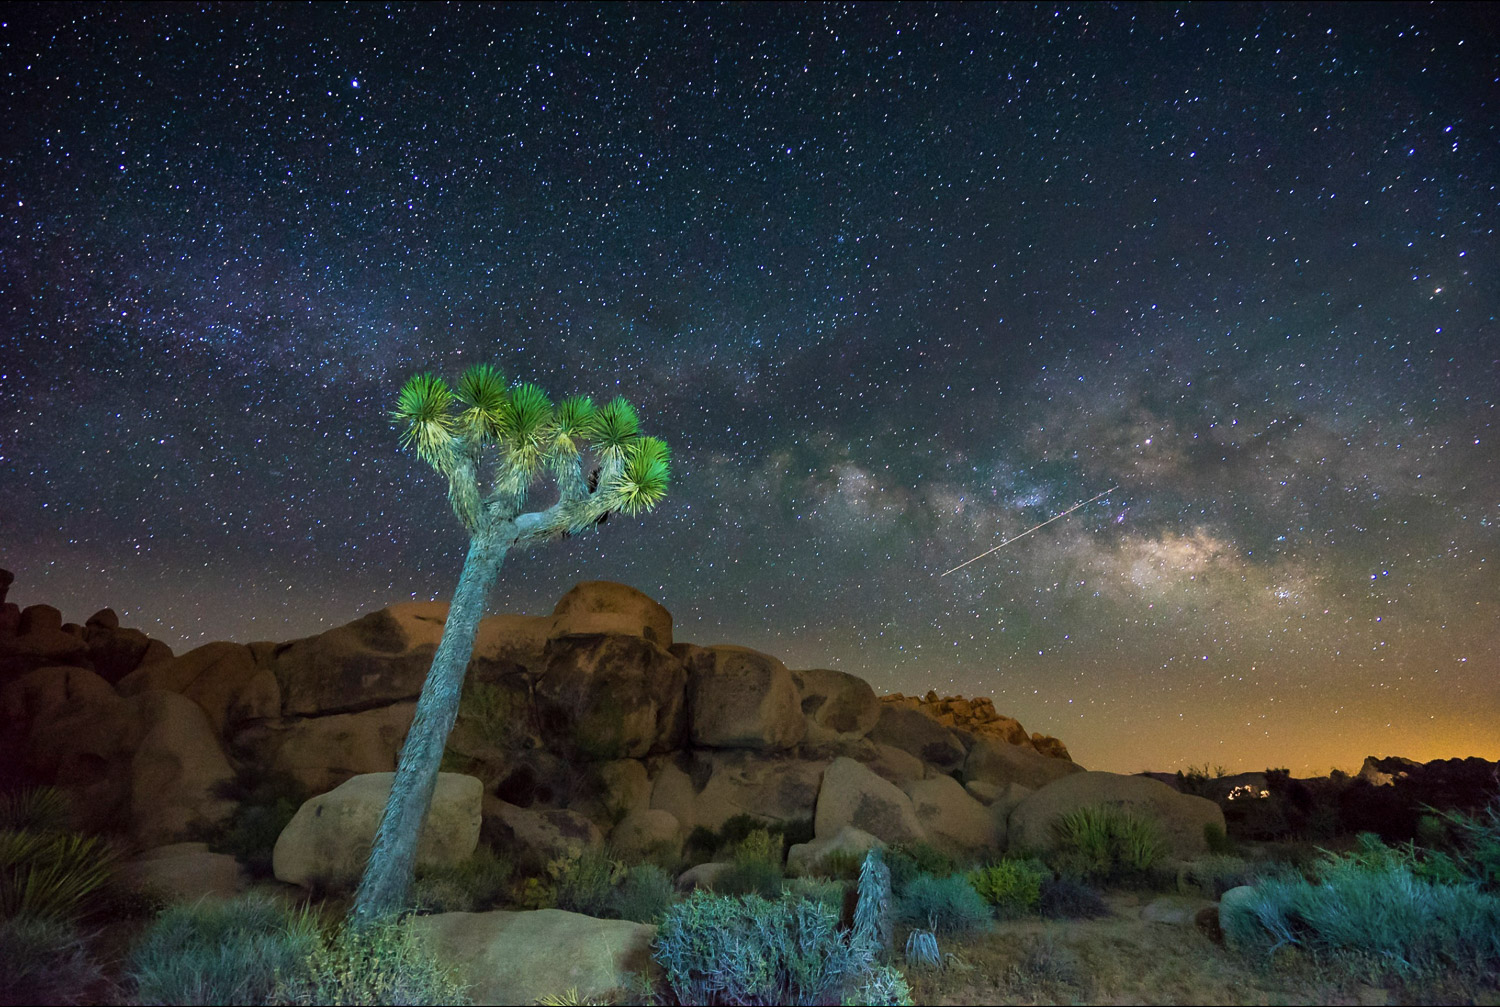 joshua tree astrophotography light painting